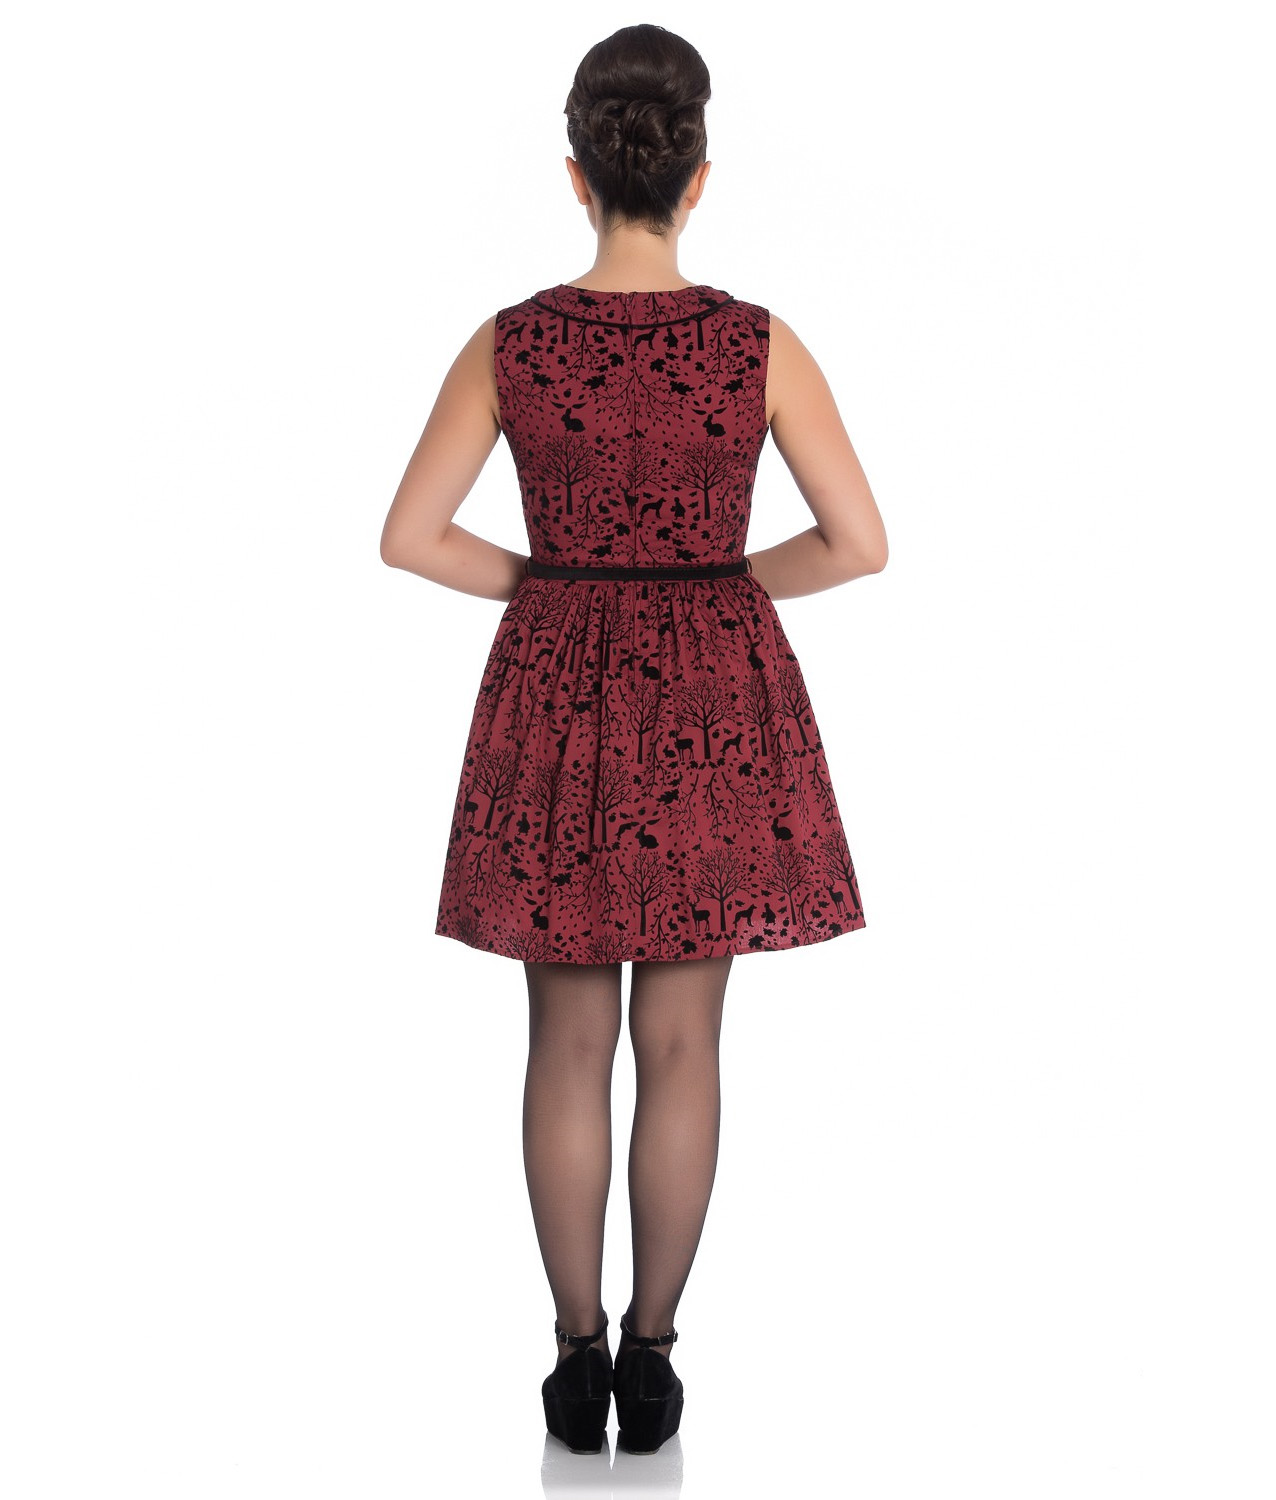 Hell-Bunny-50s-Mini-Skater-Dress-Woodland-Trees-SHERWOOD-Black-Red-All-Sizes thumbnail 9